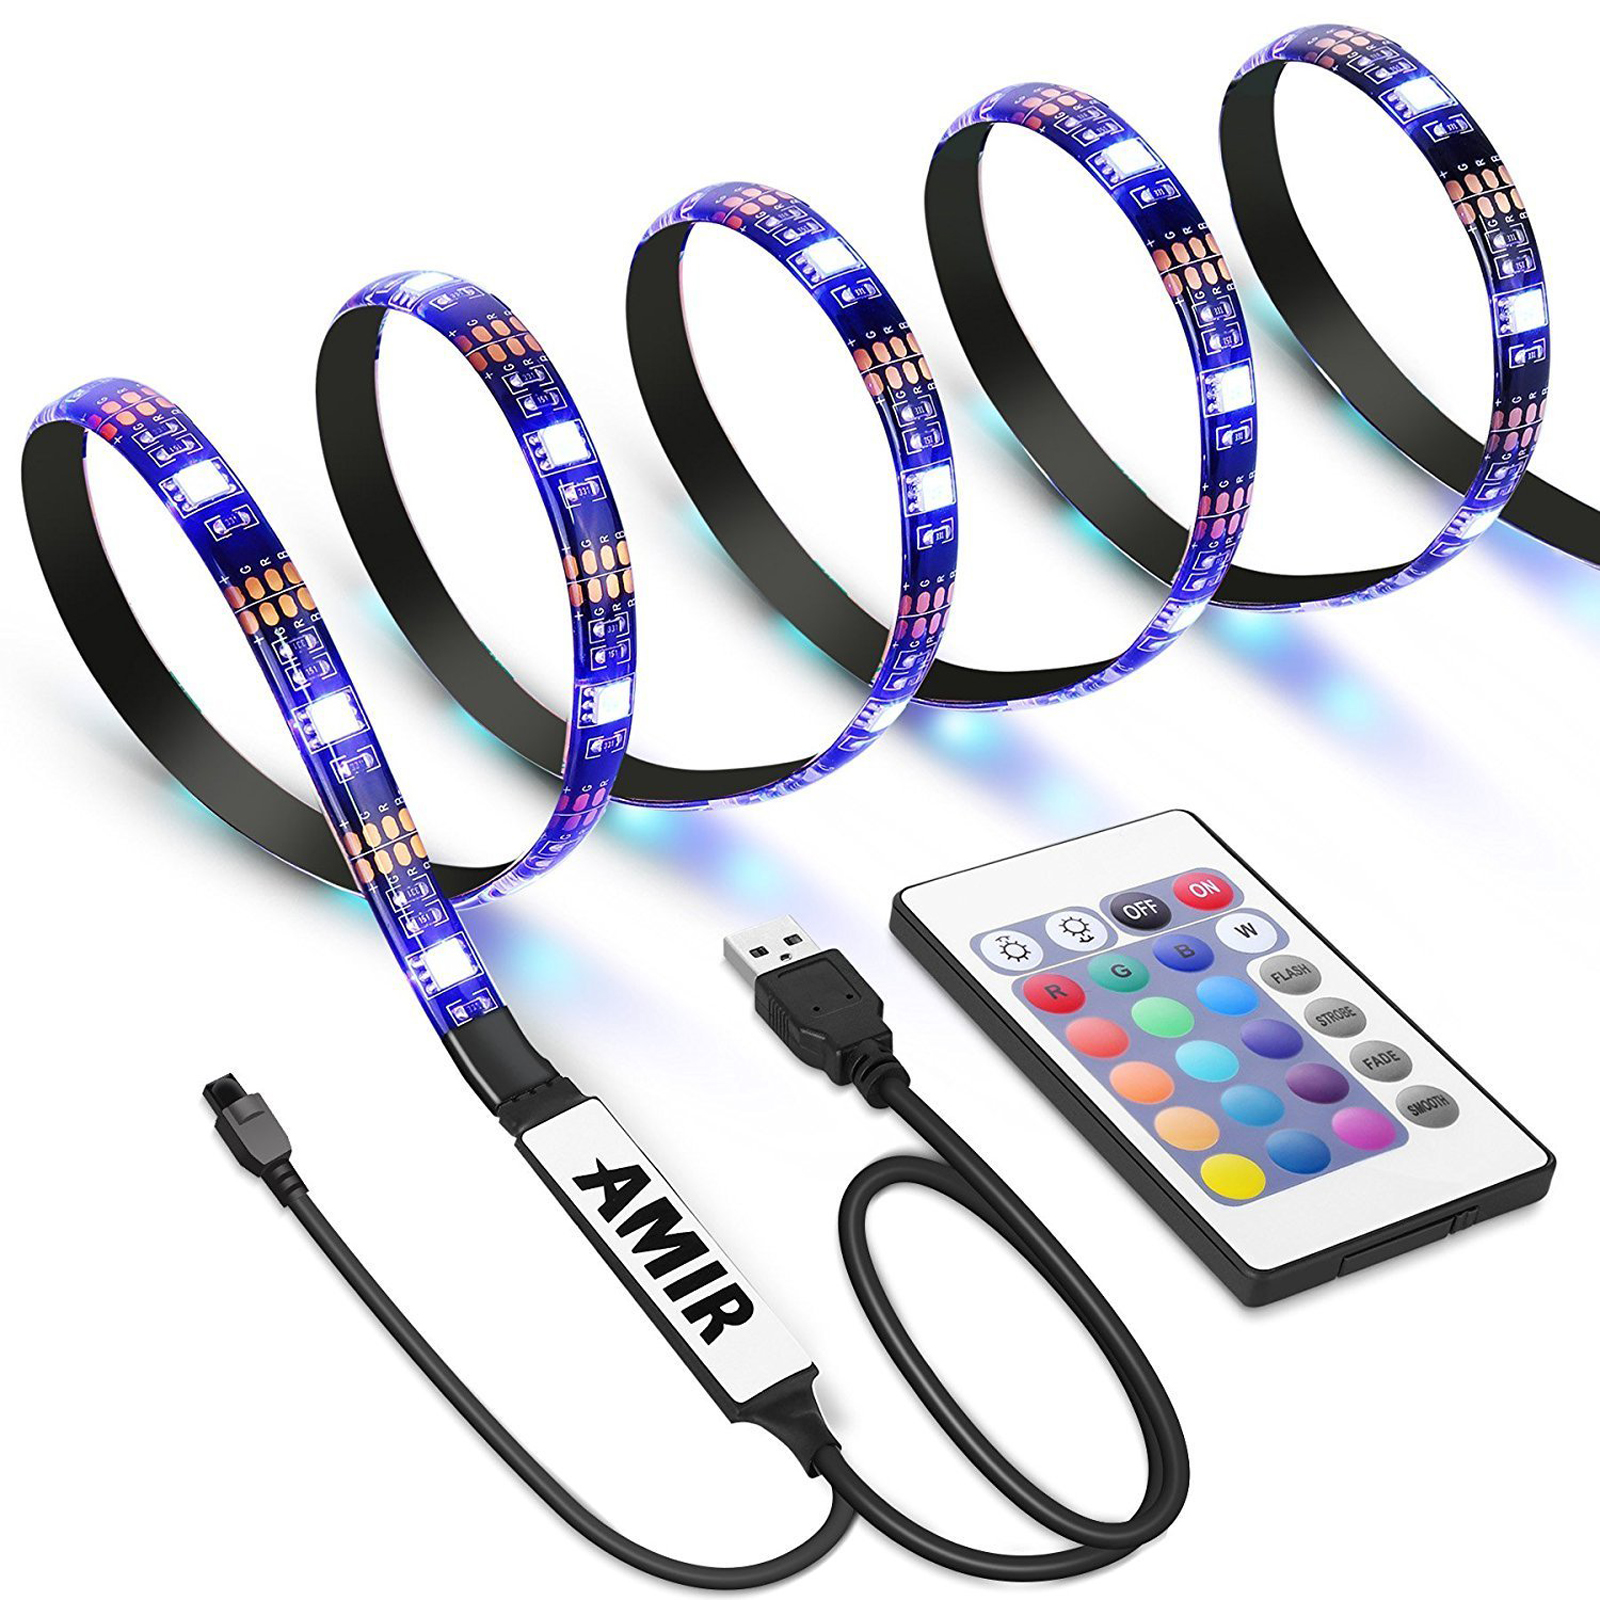 Cheap Led Lighting For The Campervan Volkscamper Wiring Lights To Leisure Battery Installation Is Simple With Strip Using A Strong 3m Double Sided Adhesive That Just Pushes Into Place Remote Needs Have Sight Of Ir